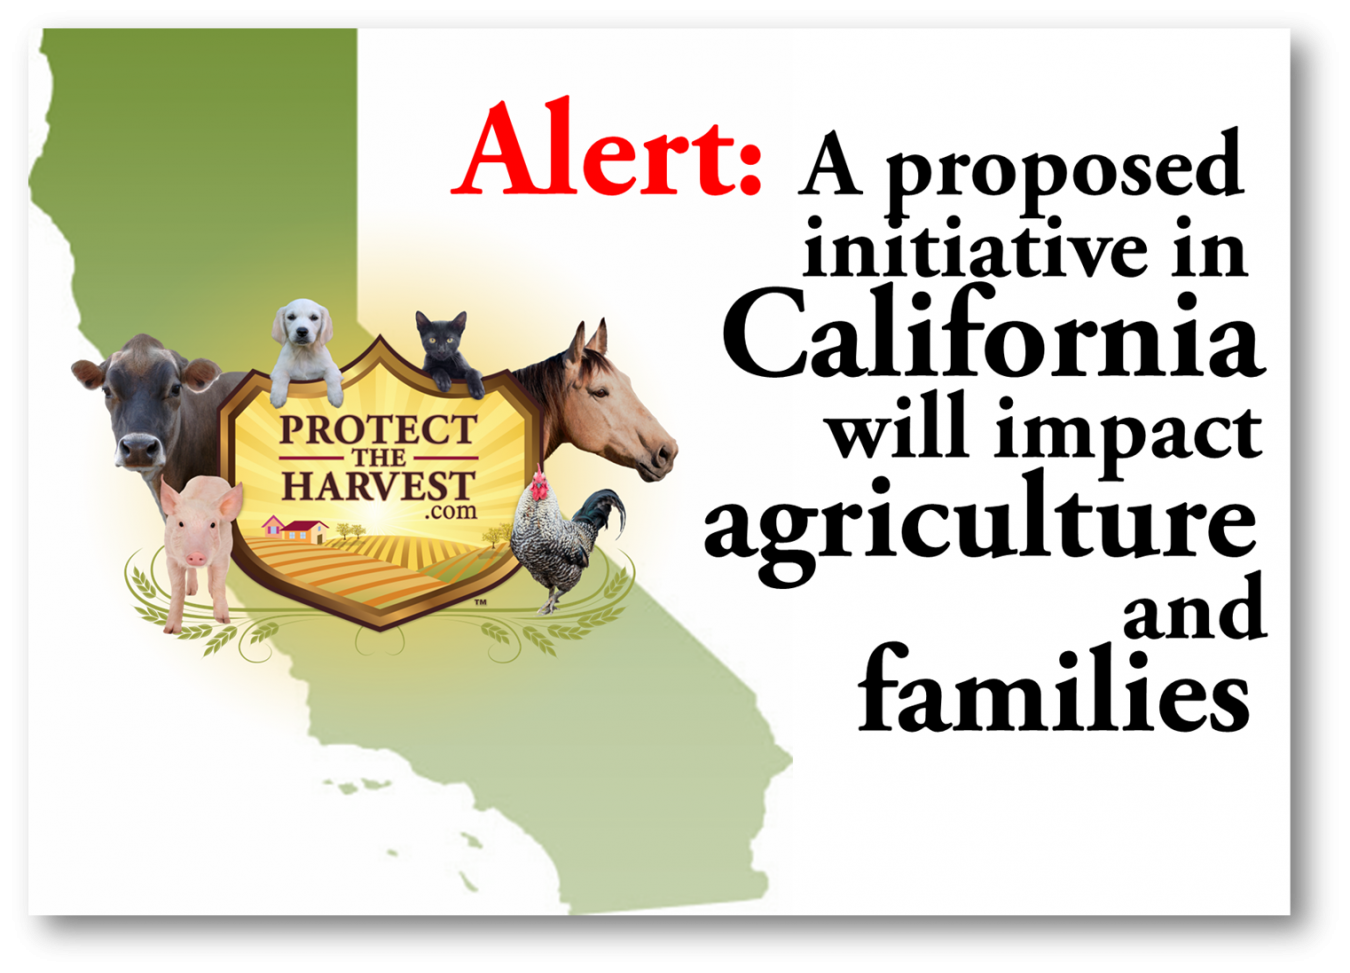 New Initiative in California Aimed Against Animal Agriculture and Families